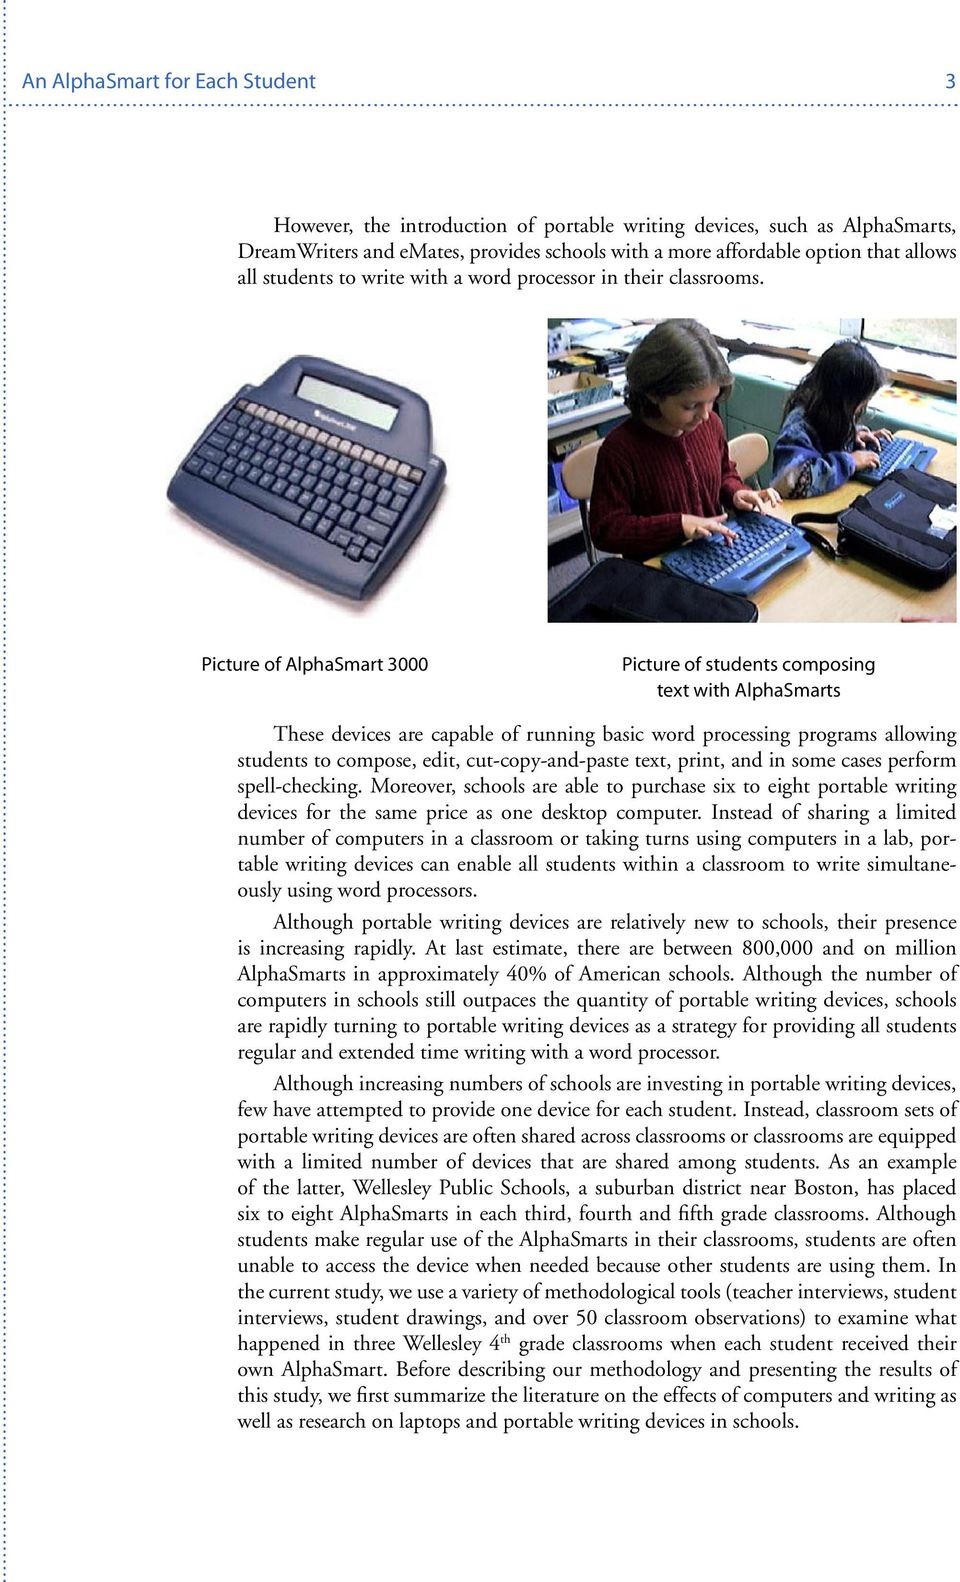 Picture of AlphaSmart 3000 Picture of students composing text with AlphaSmarts These devices are capable of running basic word processing programs allowing students to compose, edit,